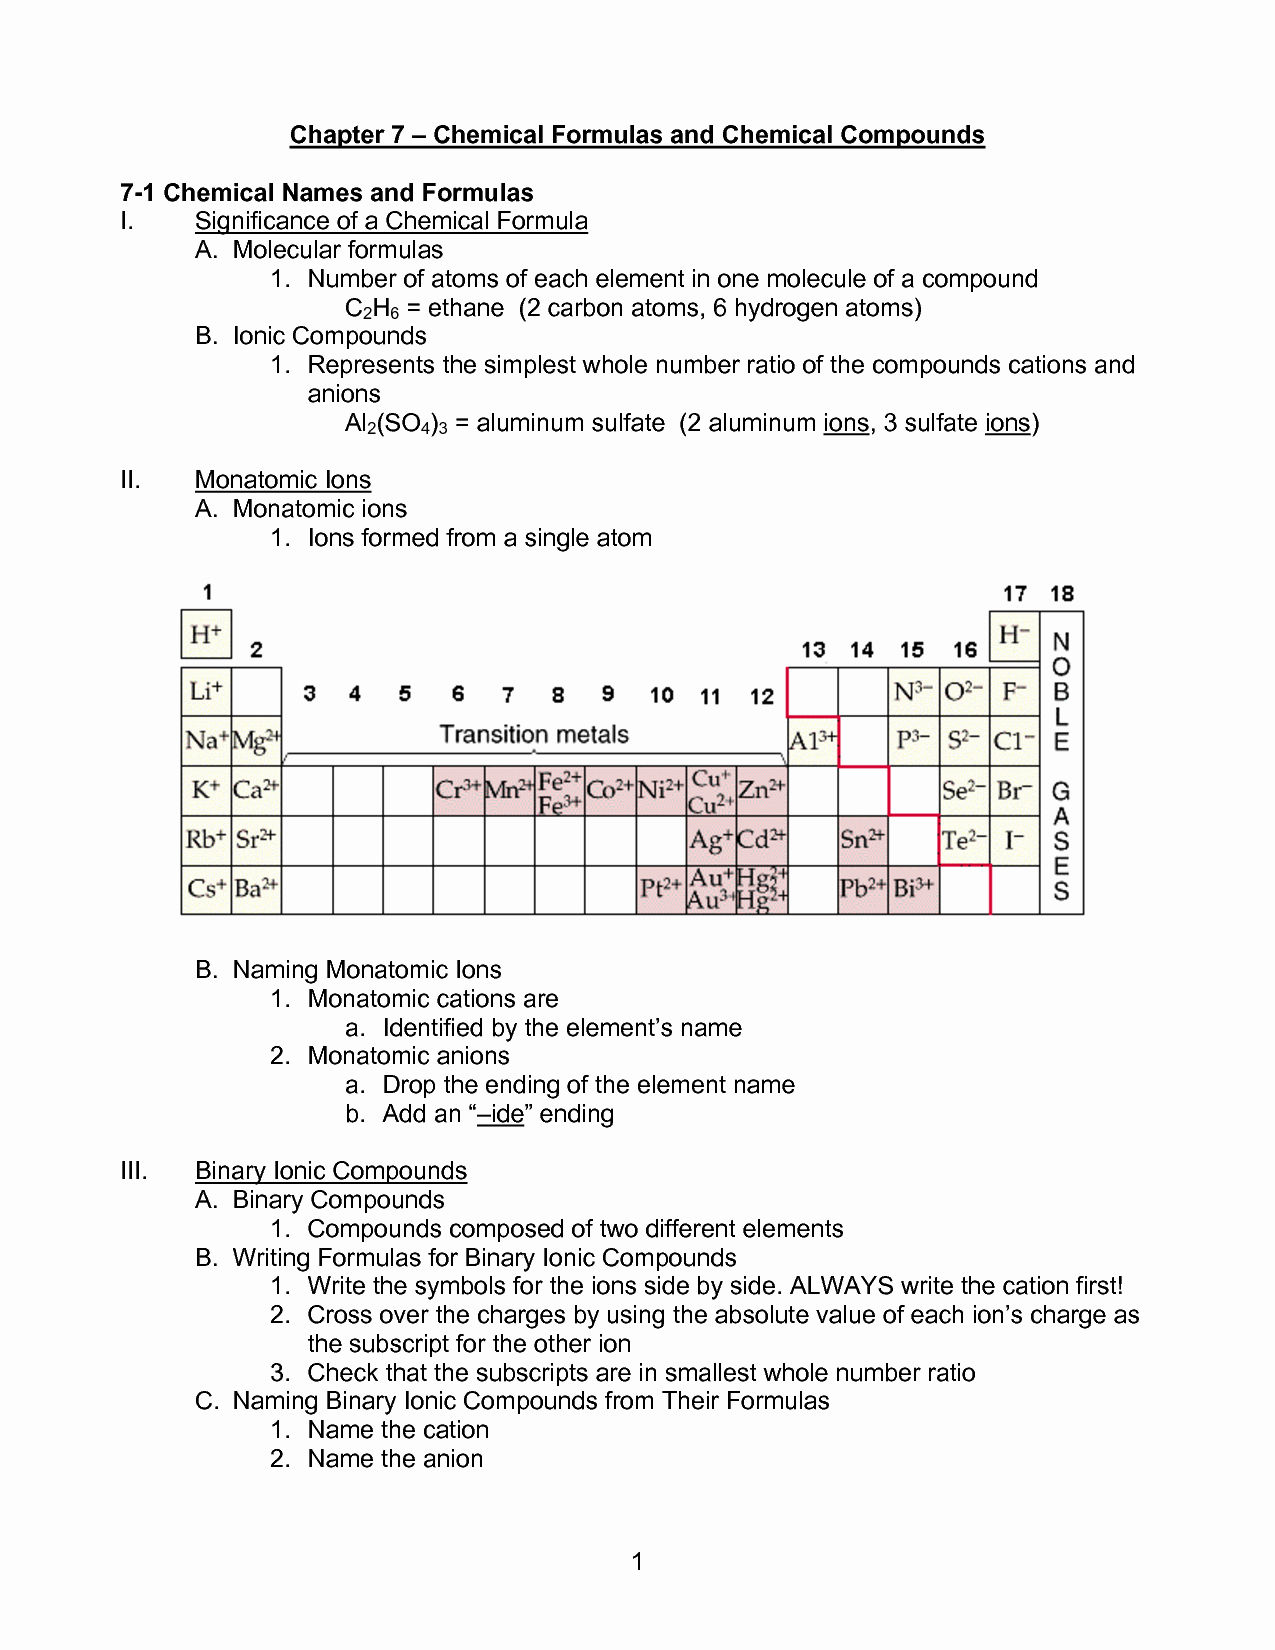 Naming Ionic Compounds Worksheet Answers Lovely Number atoms In A formula Worksheet Answers